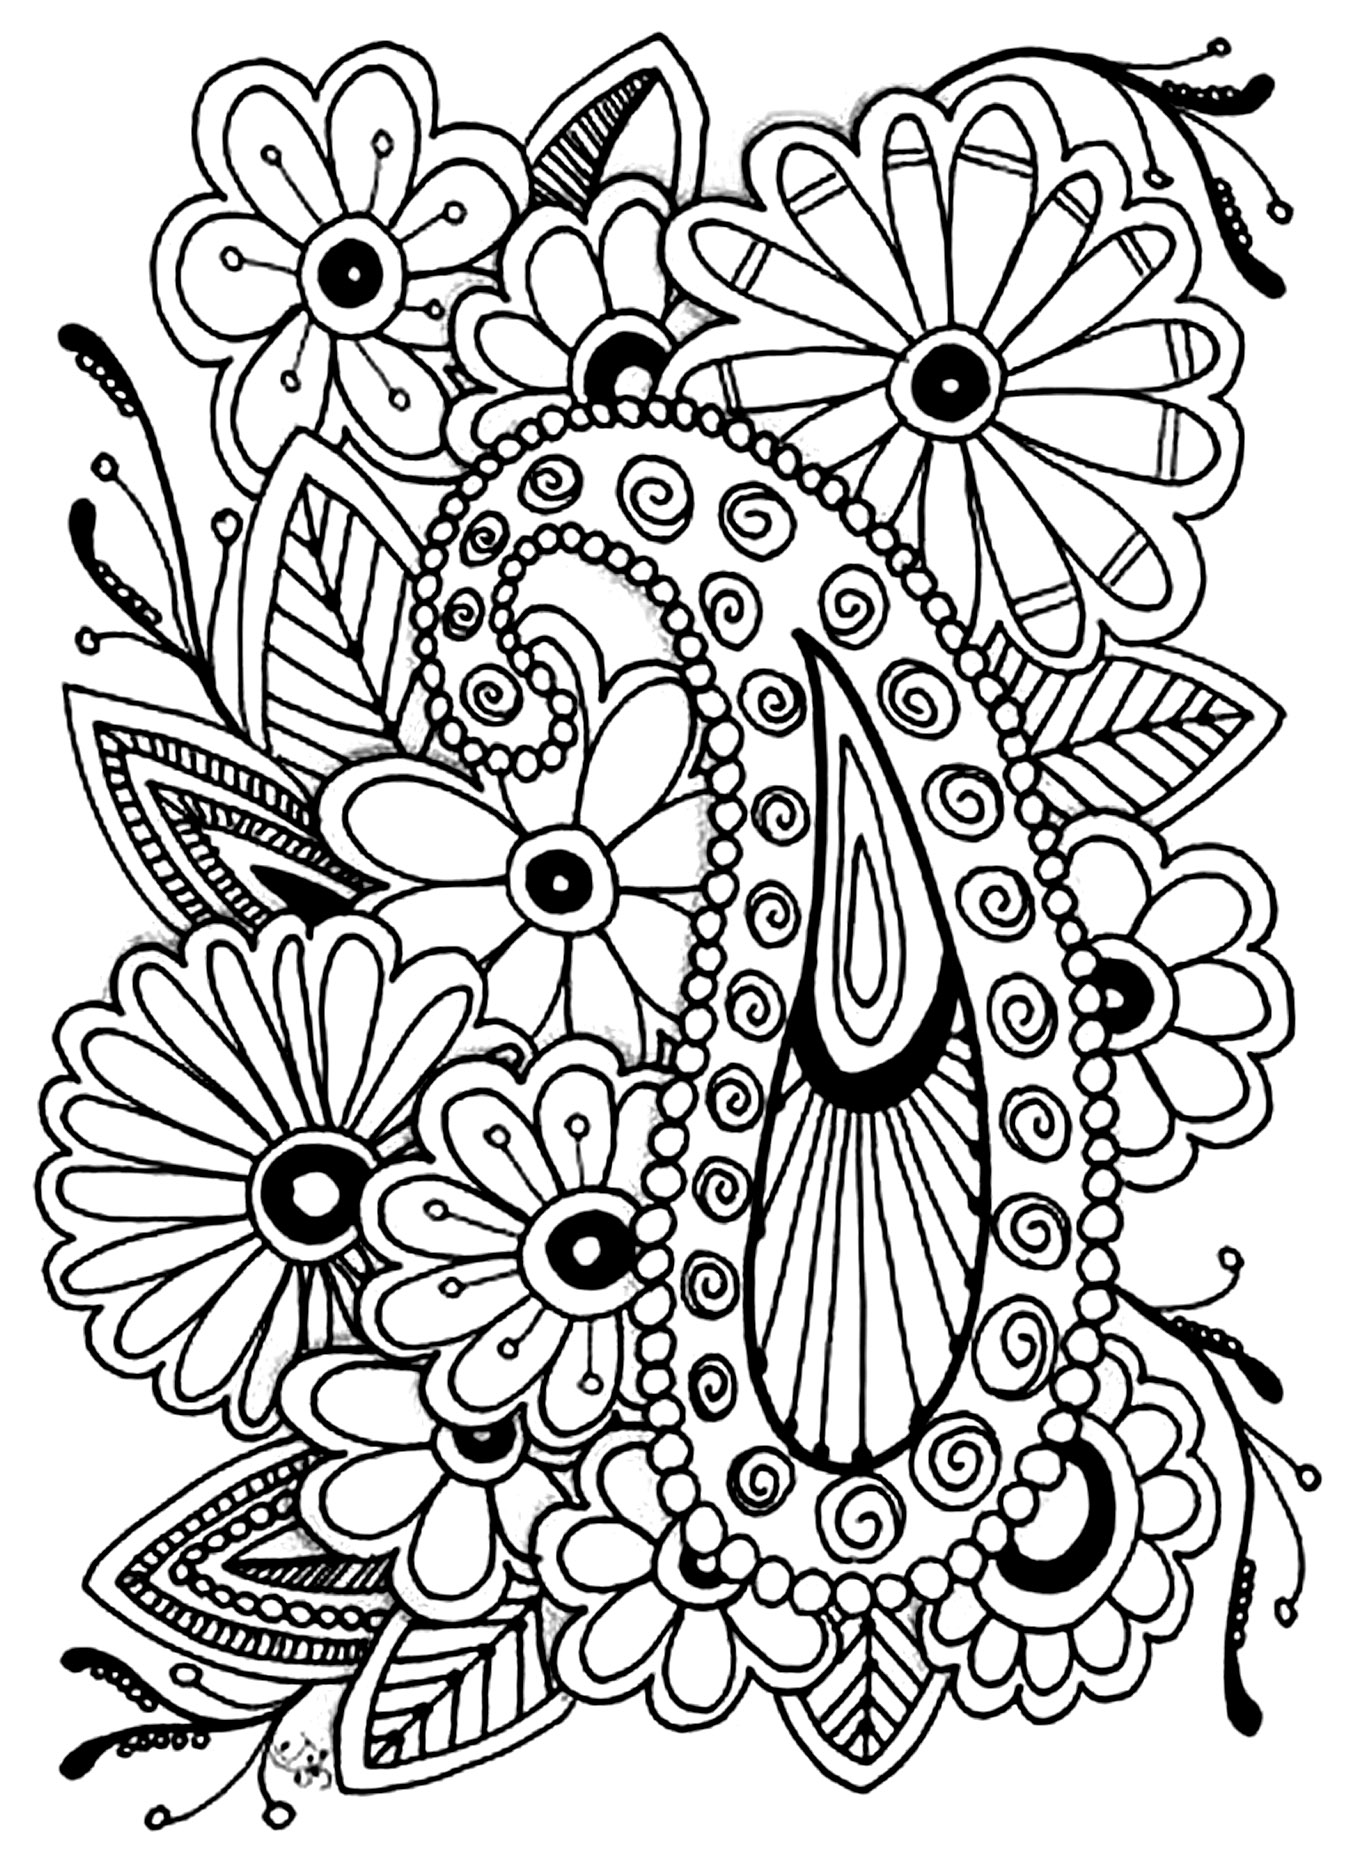 flower pattern to color coloring pages coloring drawing pattern to pattern color flower